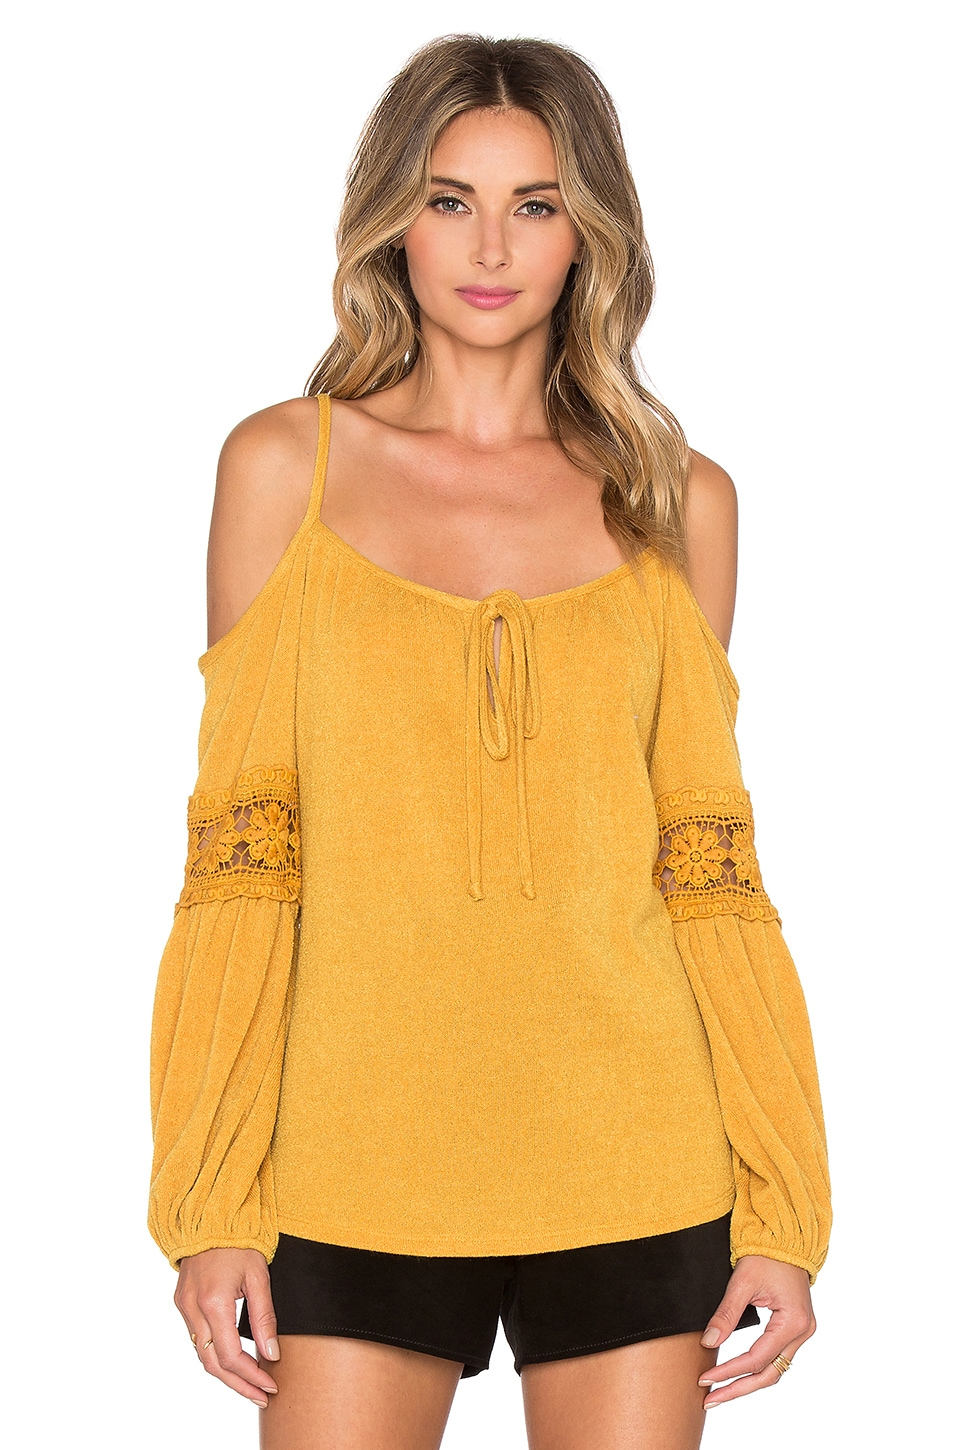 Joanne Open Shoulder Top